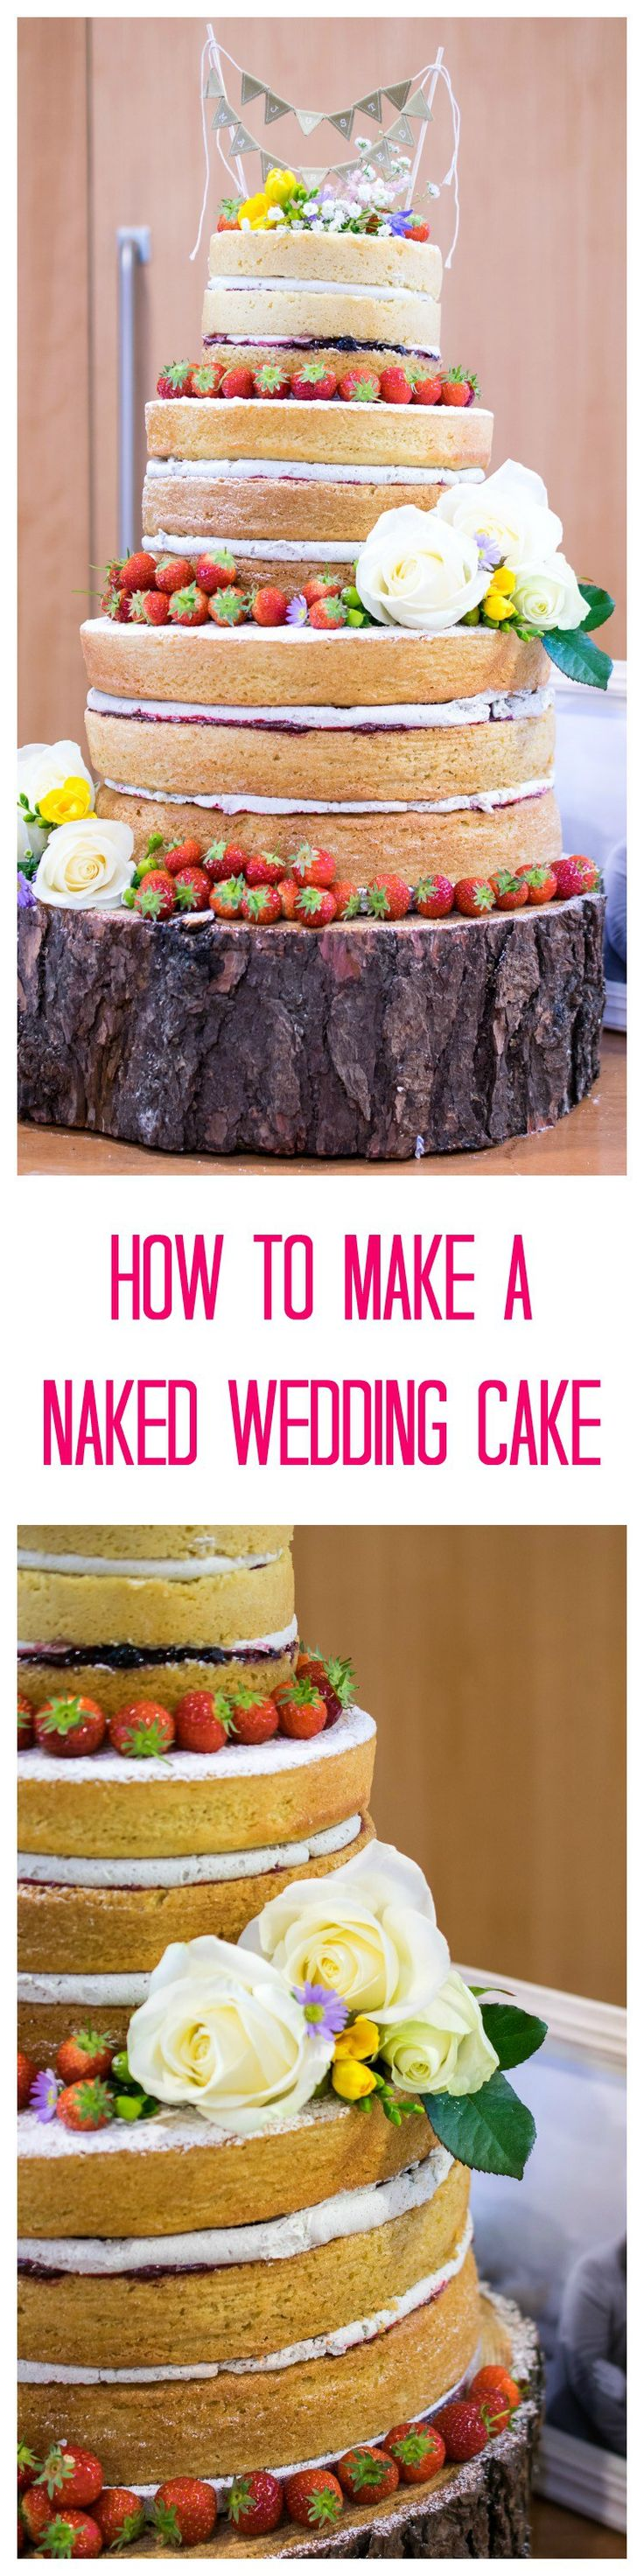 how to make a naked wedding cake